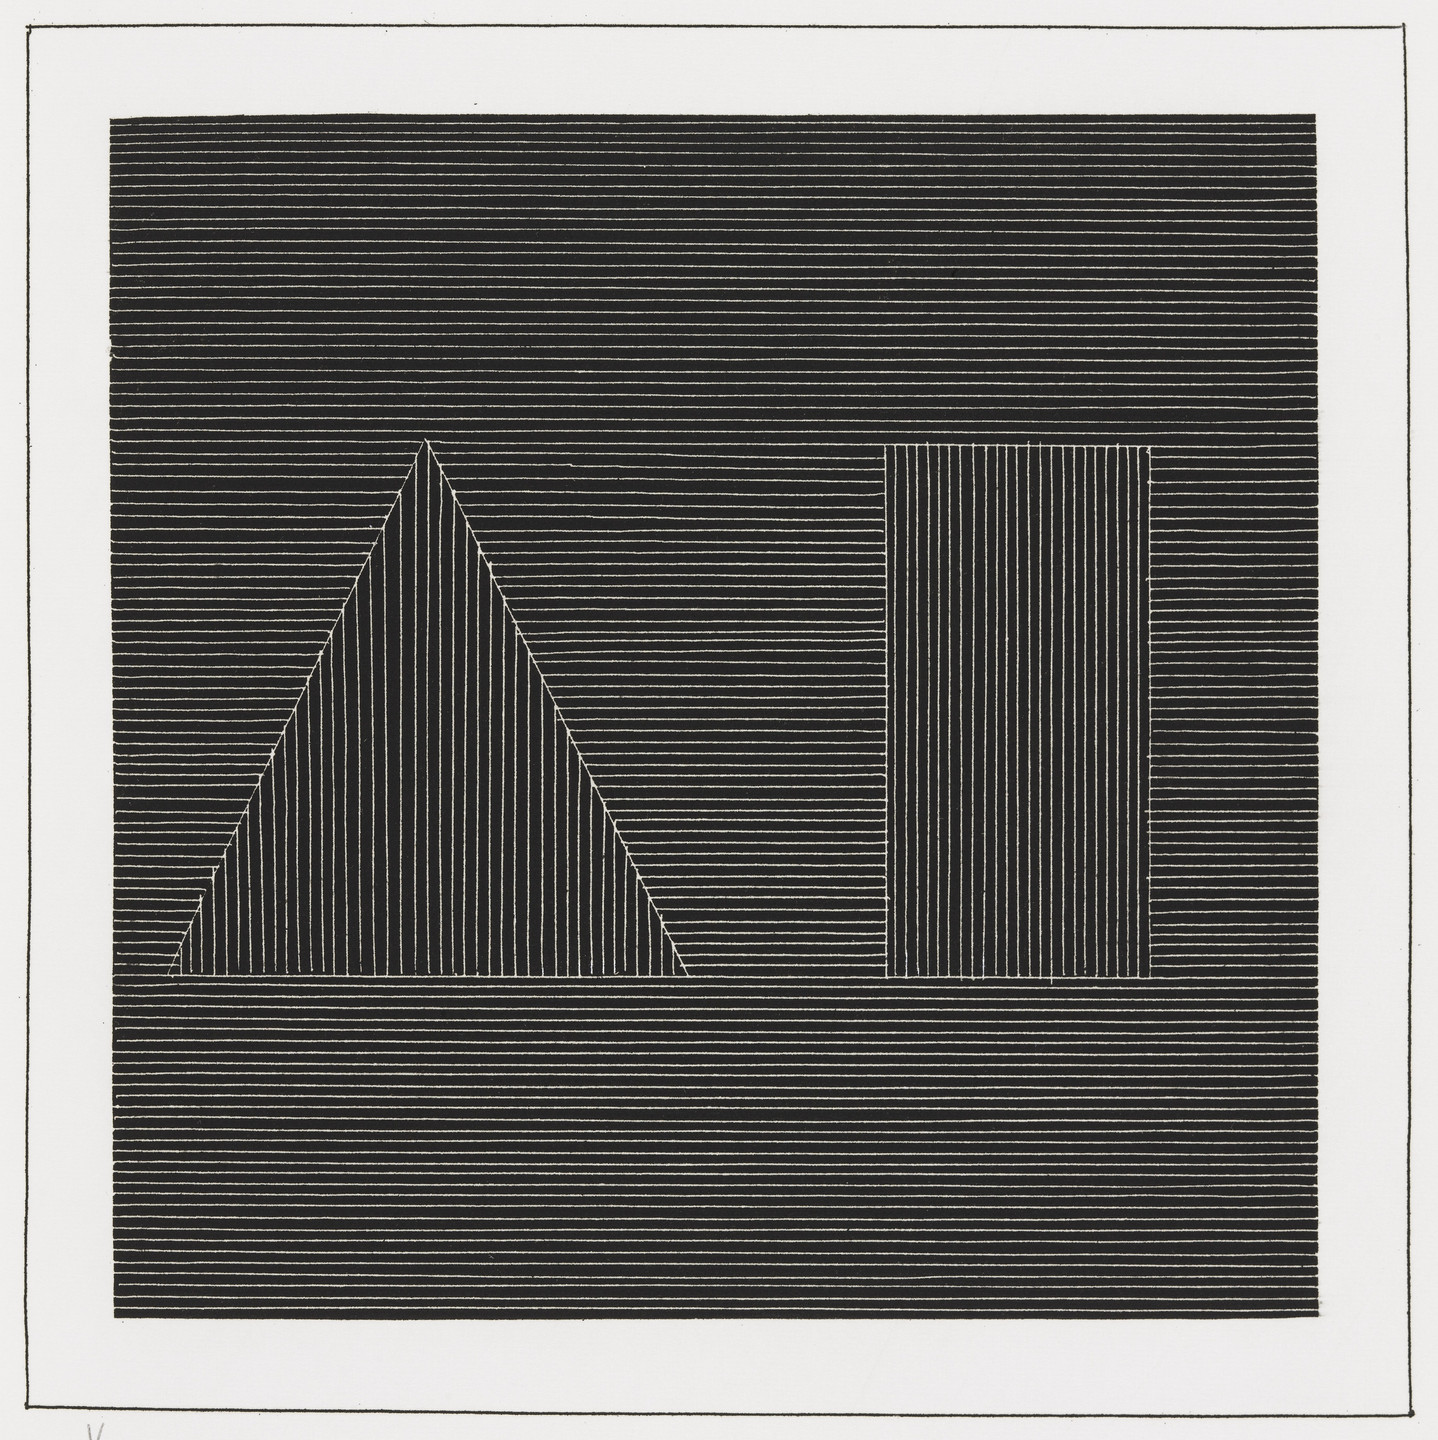 Sol LeWitt. Plate (folio 17) from Six Geometric Figures and All Their Combinations, Volume I. 1980